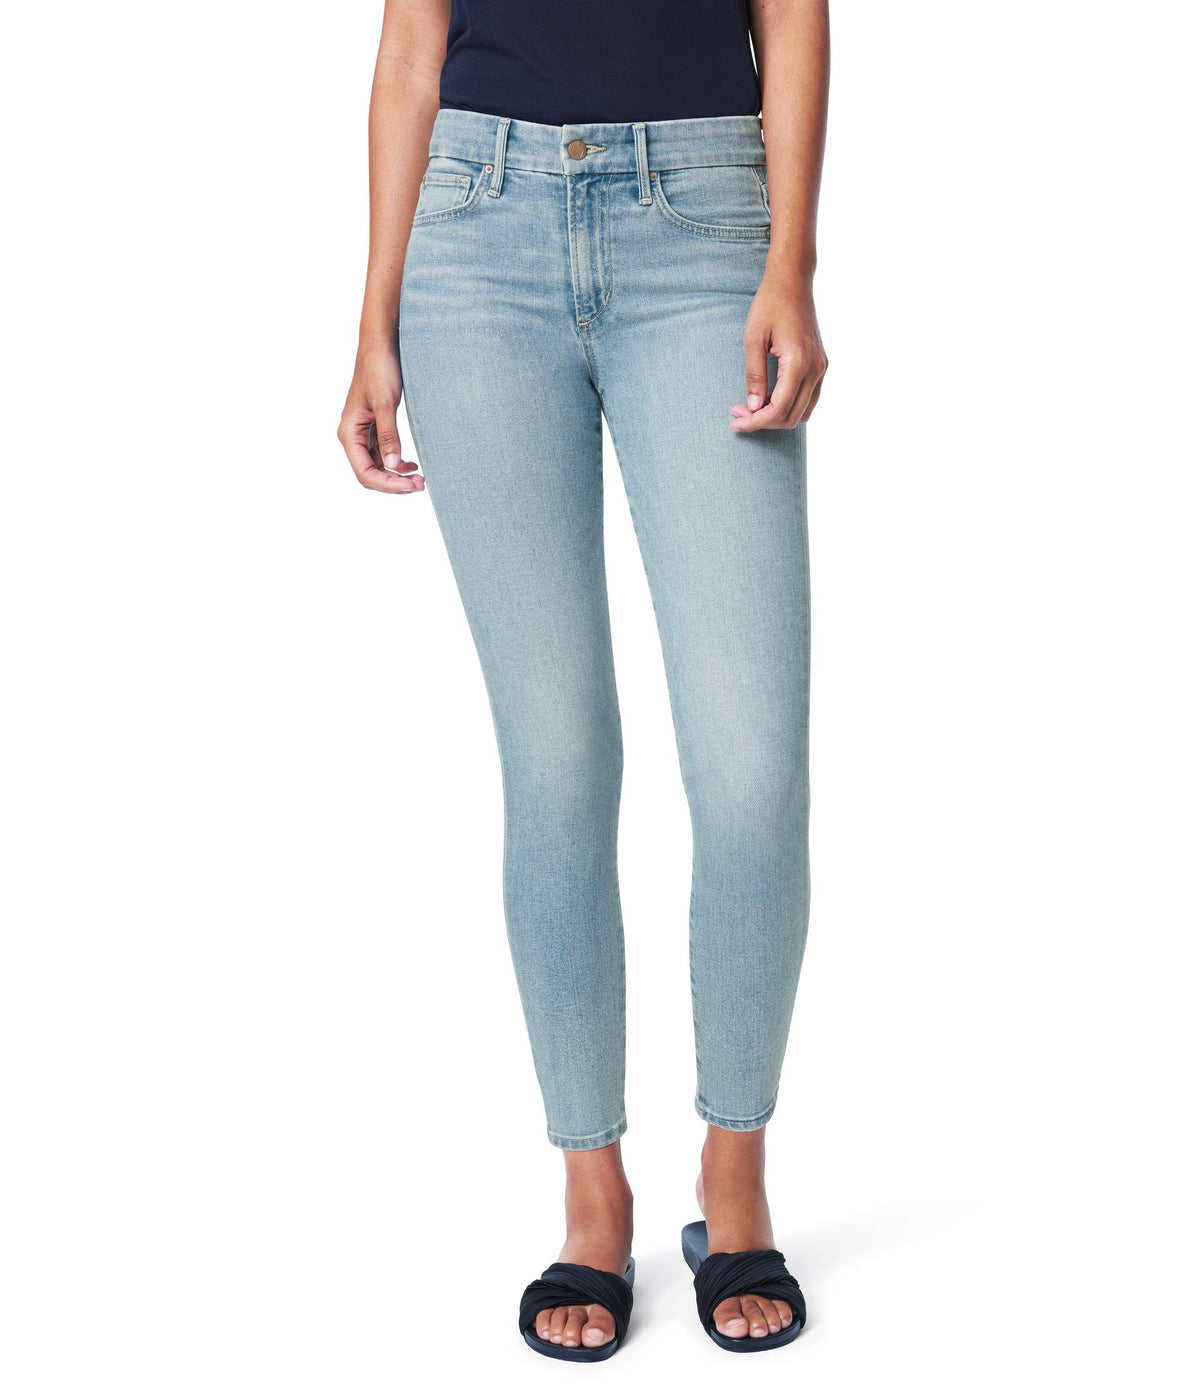 Icon Crop Jeans in Plumeria